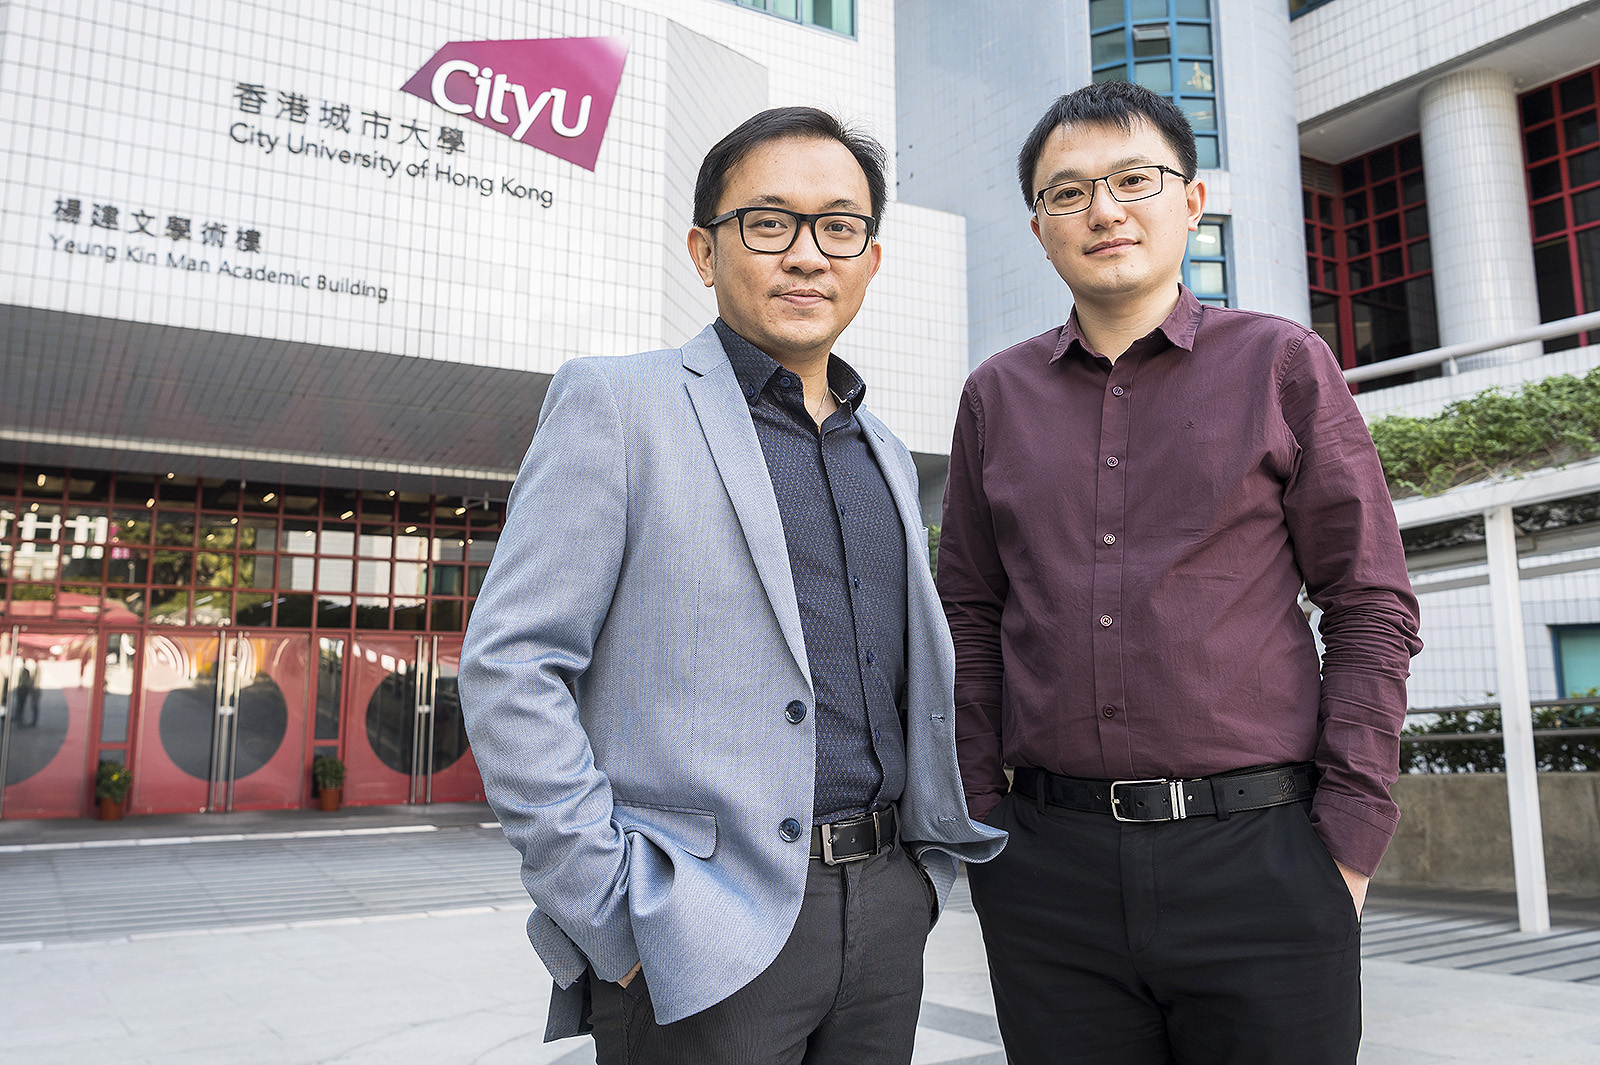 (From left) Dr Ng Yun-hau and Dr Shang Jin have developed new technologies for generating sustainable energy and mitigating air pollution.